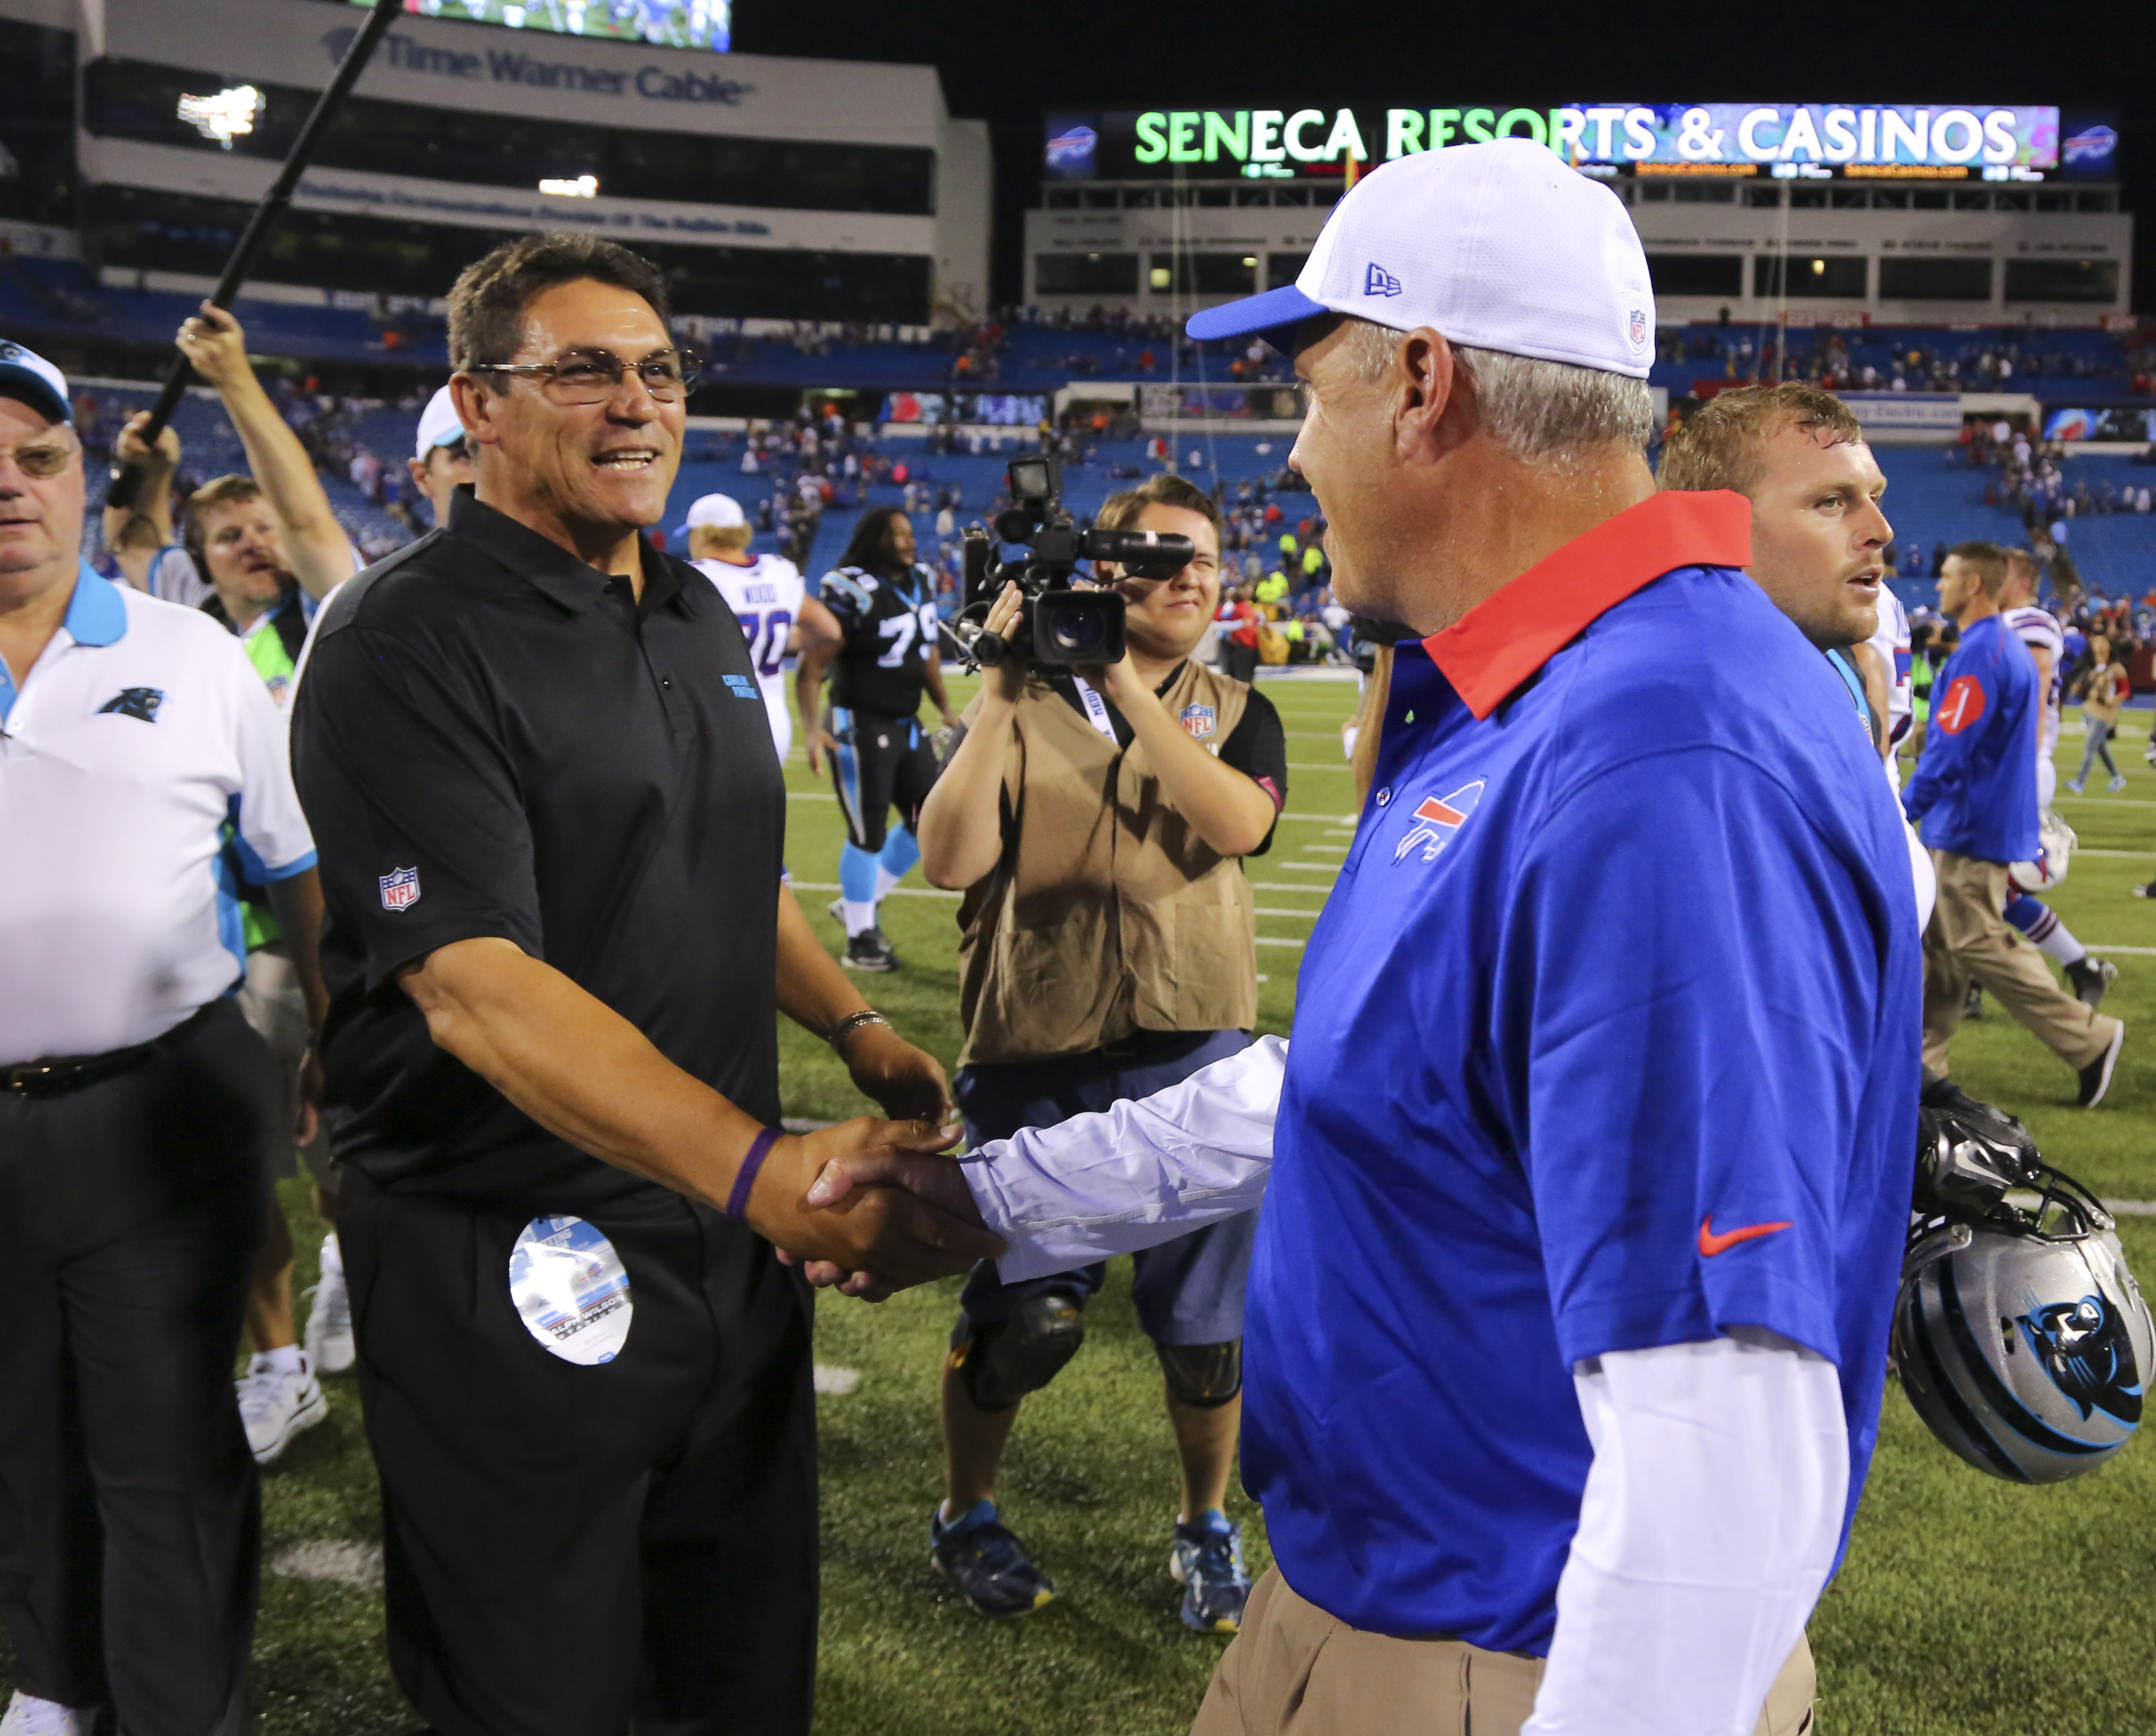 Carolina Panthers head coach Ron Rivera, left, and Buffalo Bills head coach Rex Ryan shake hands after an NFL preseason football game on Friday, Aug. 14, 2015, in Orchard Park, N.Y. The Panthers won 25-24. (AP Photo/Bill Wippert)